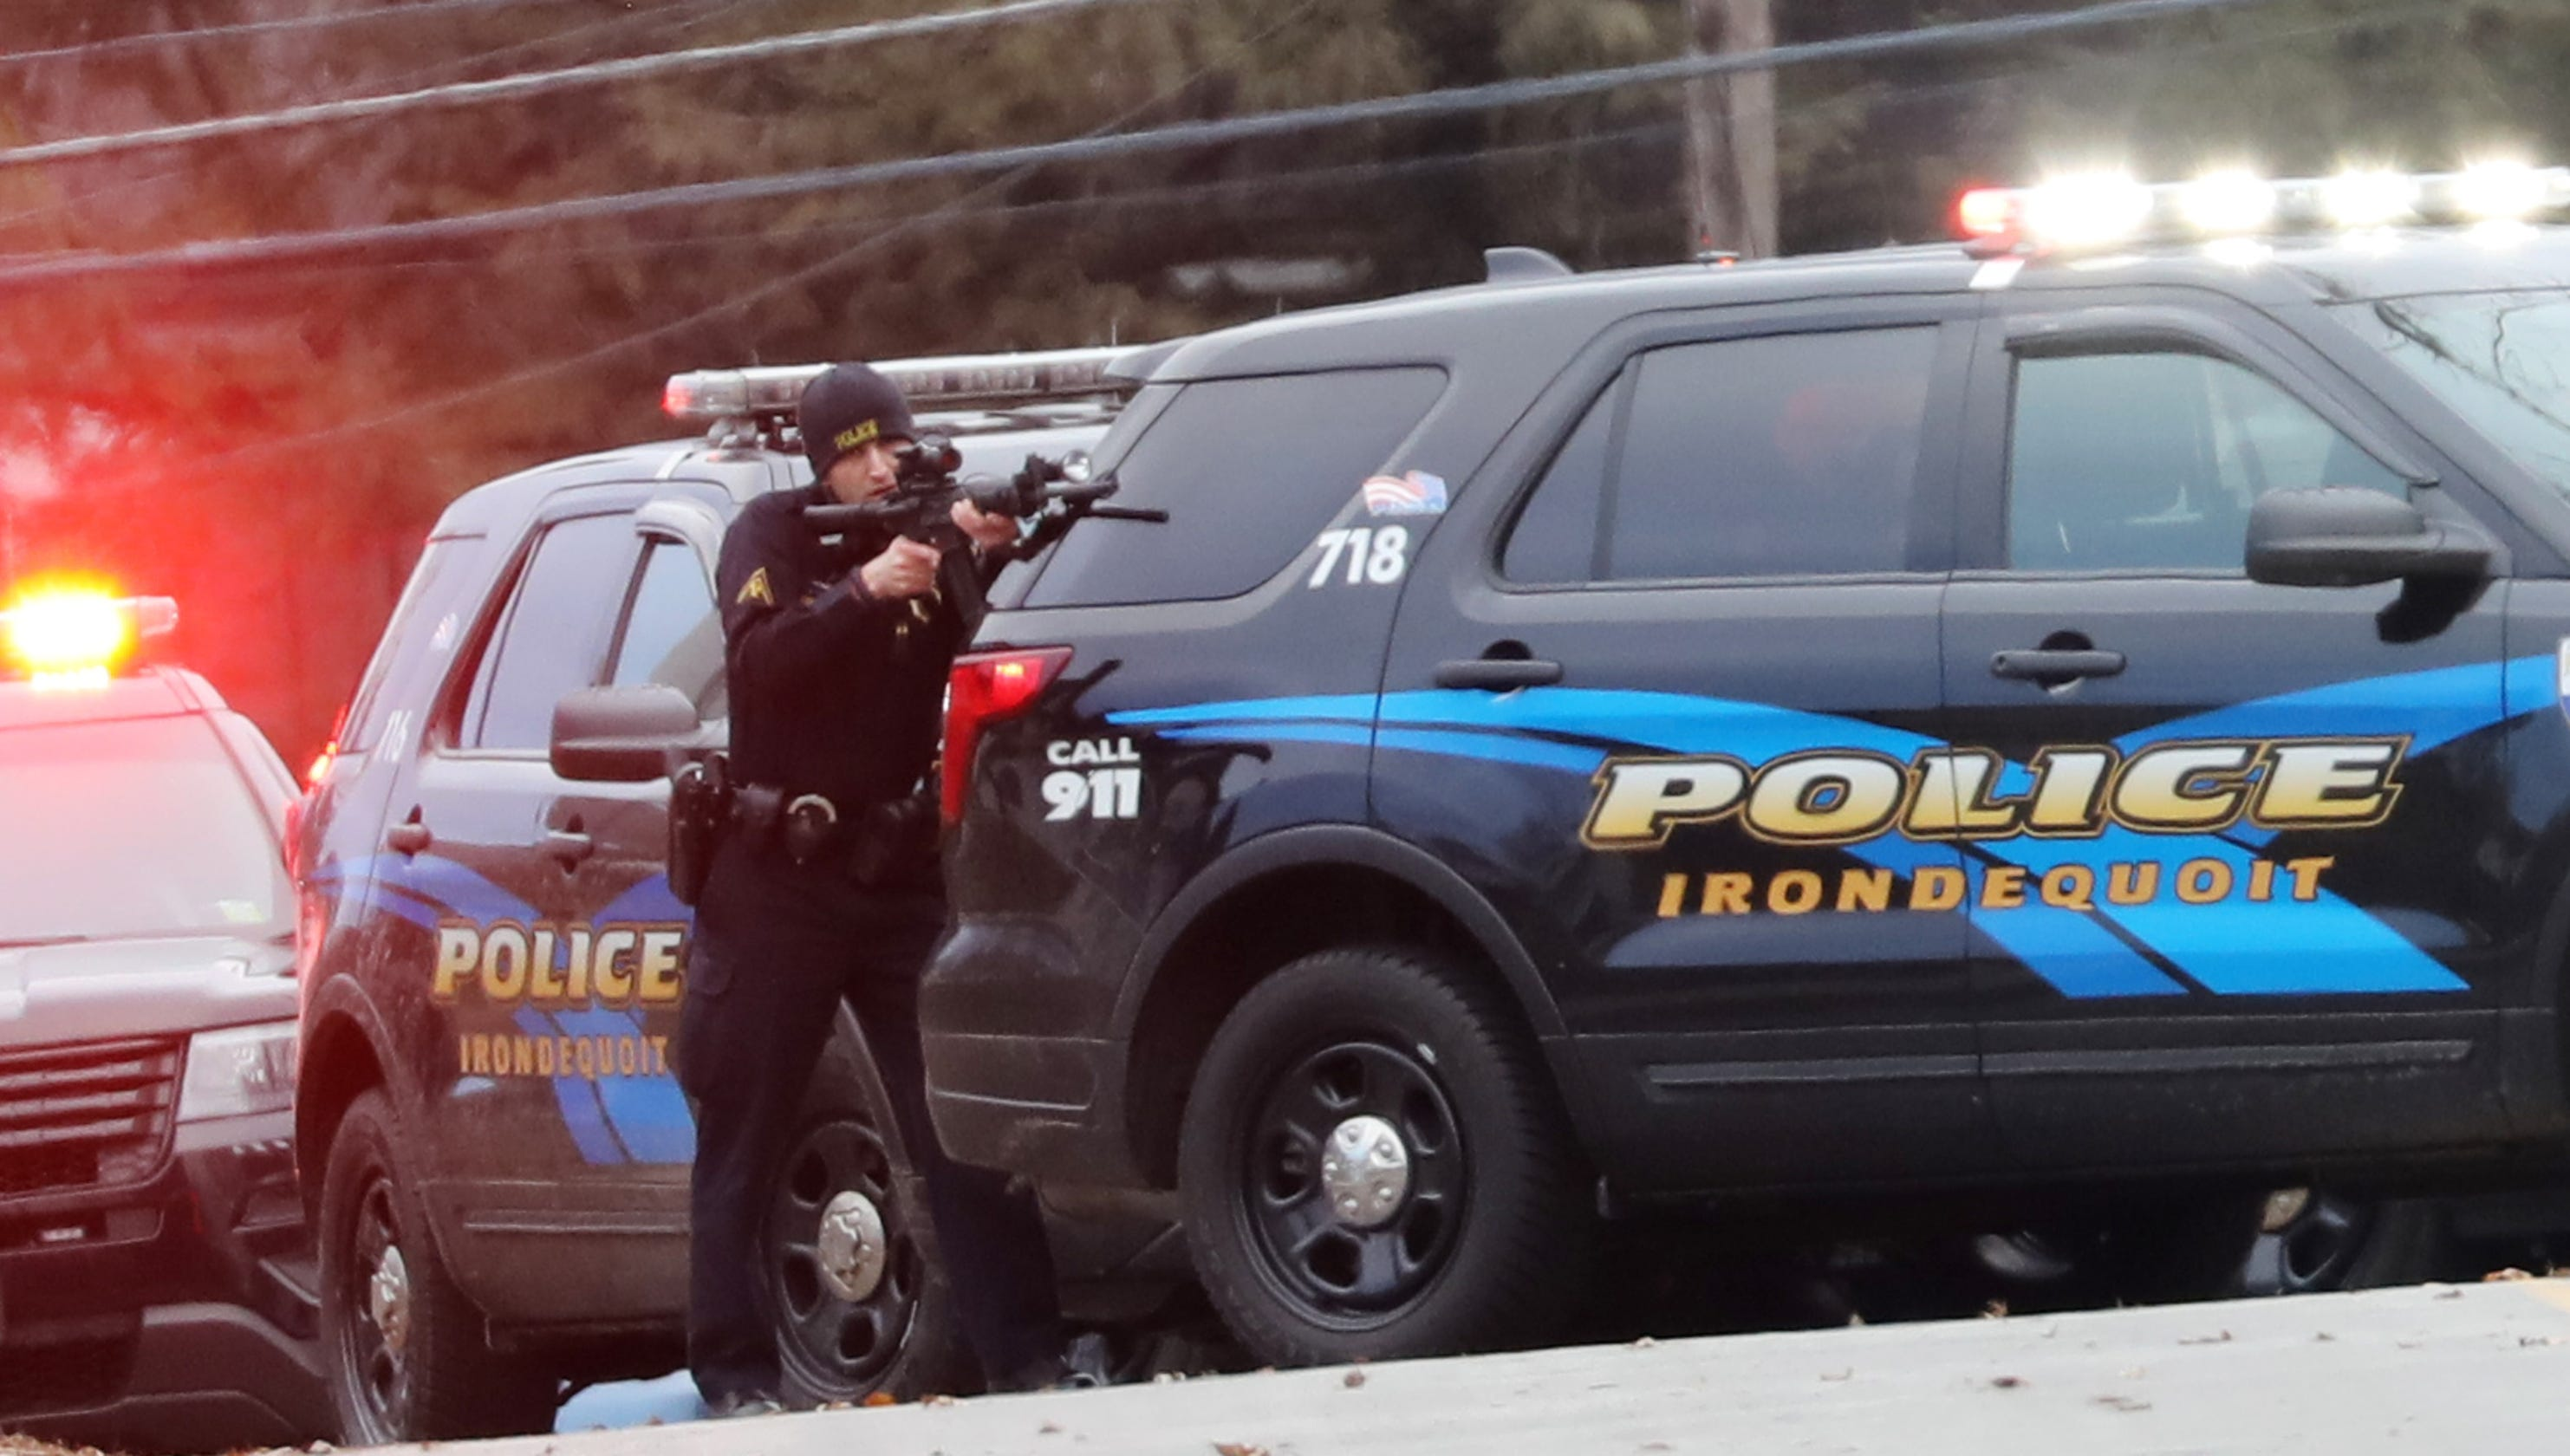 Irondequoit home invasion report 'unfounded'